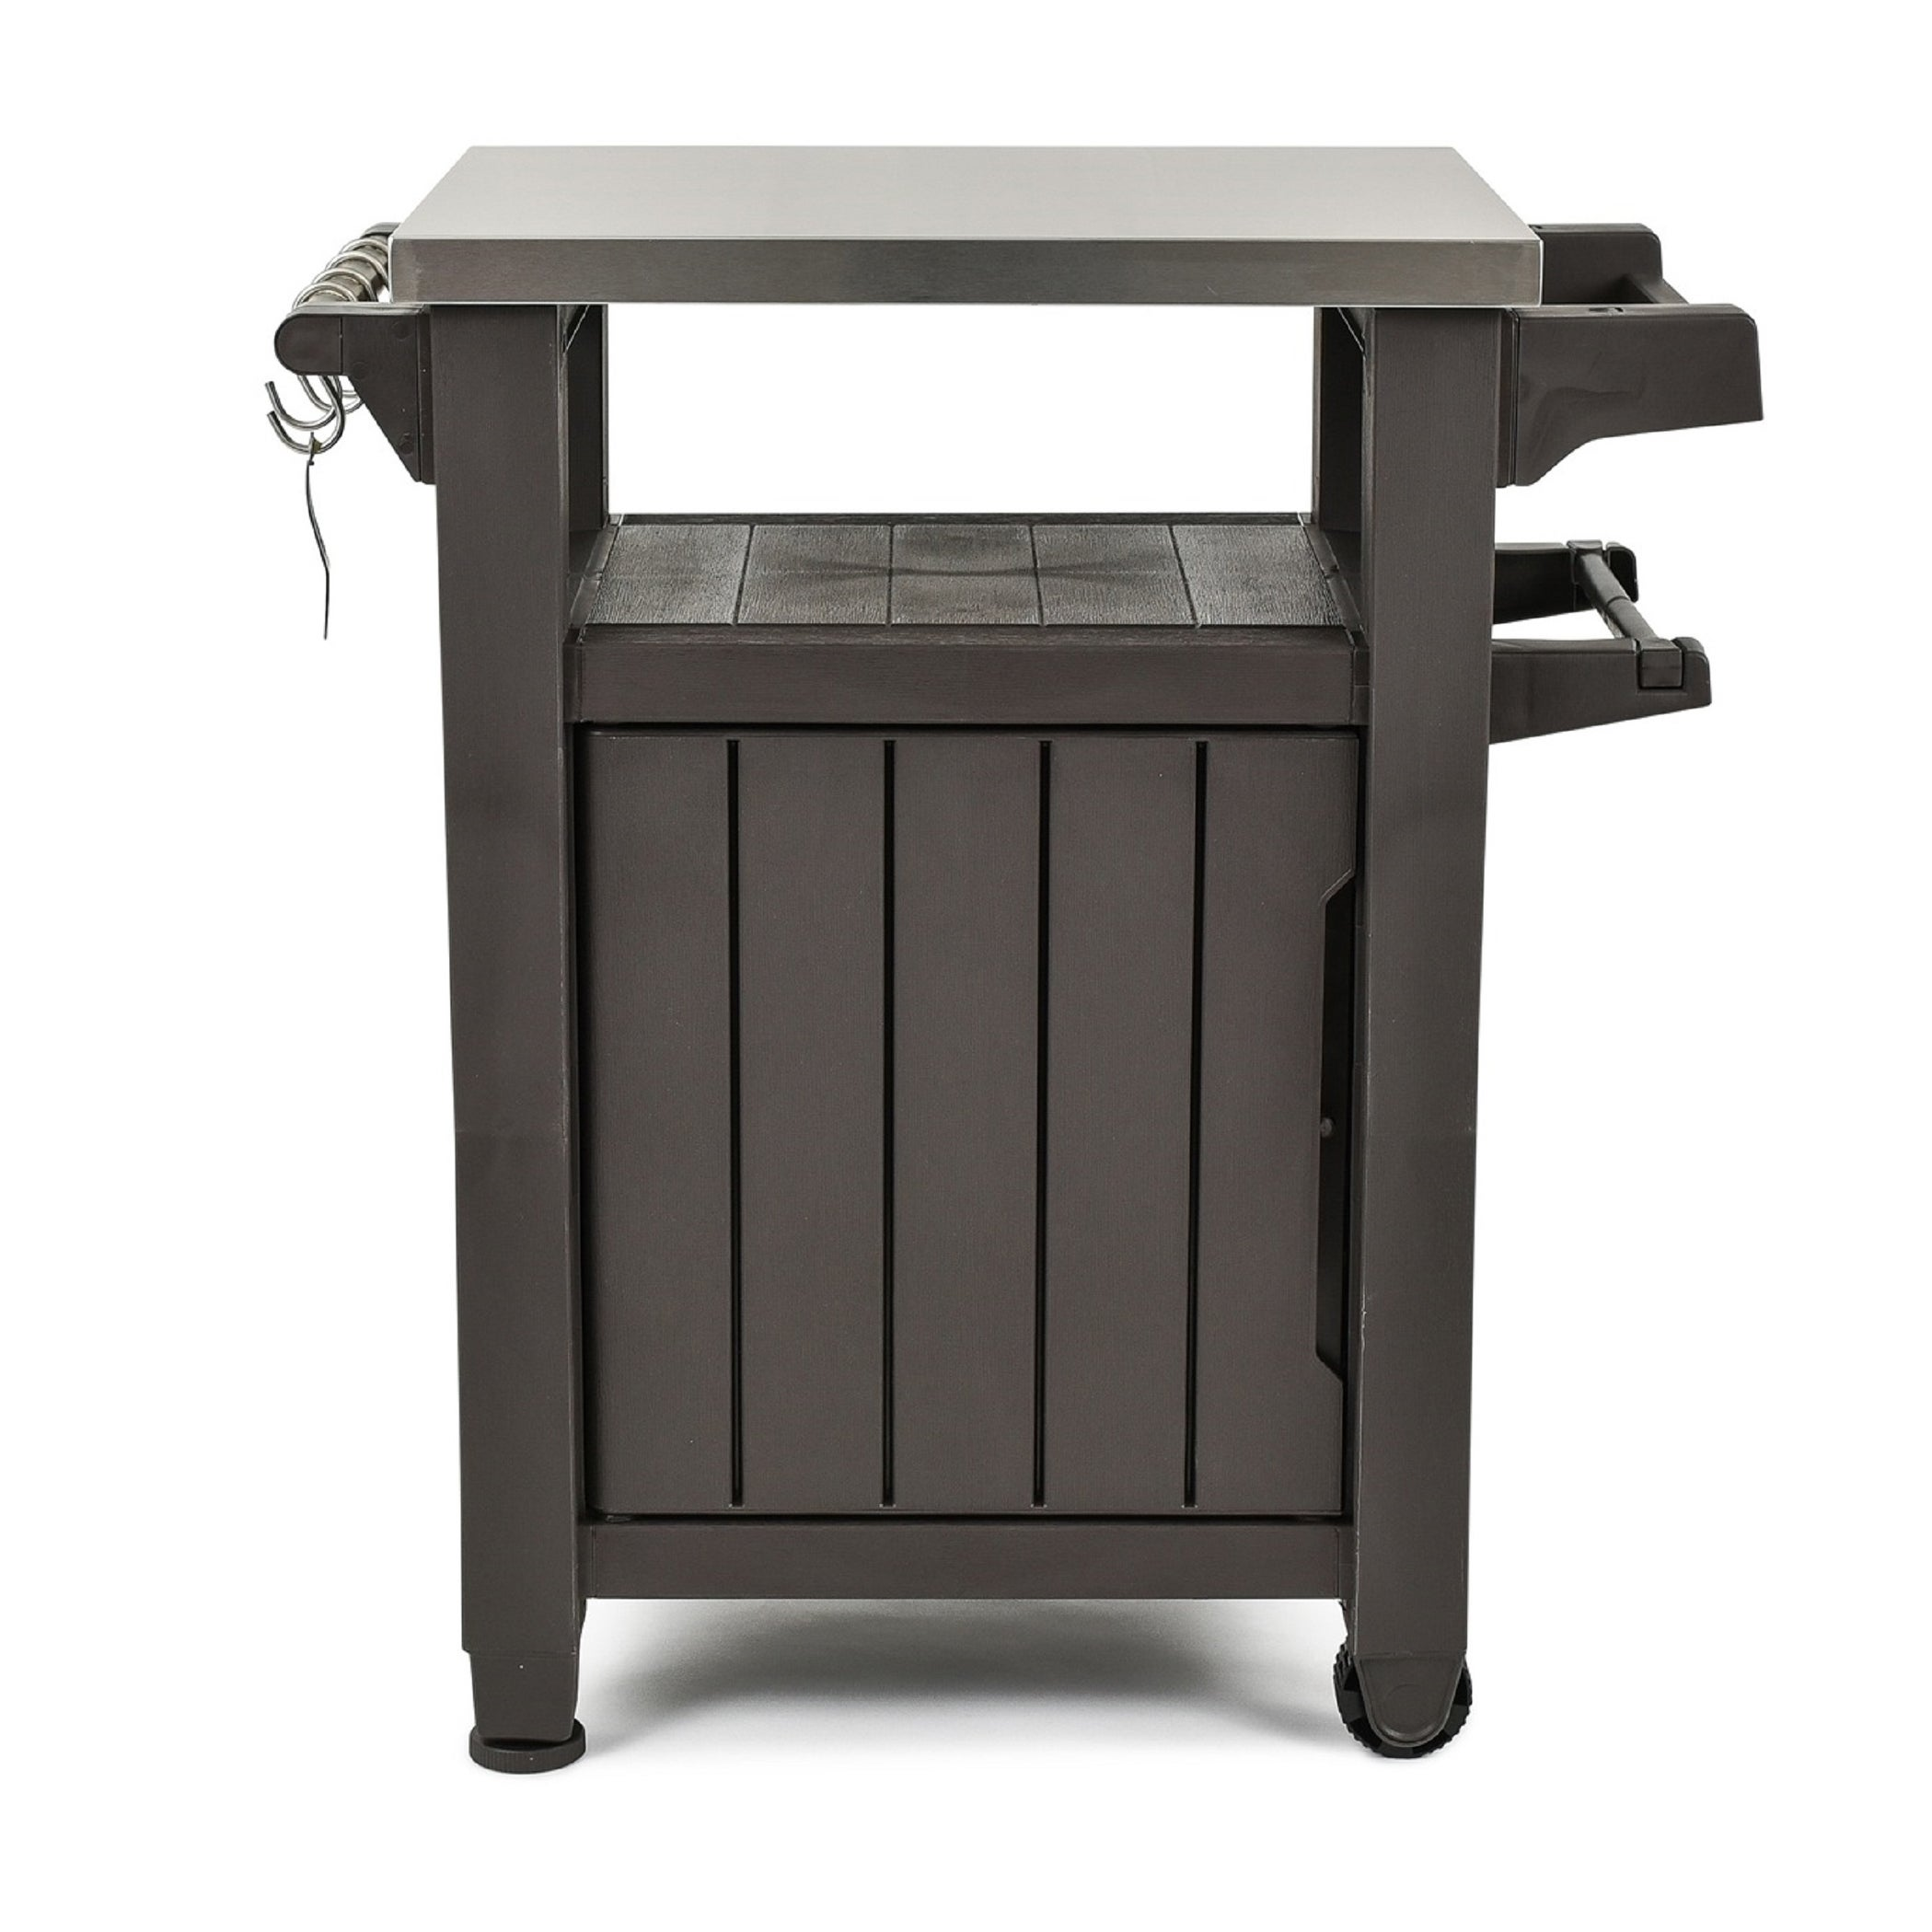 Shop Keter Unity Indoor Outdoor Serving Cart Prep Station With